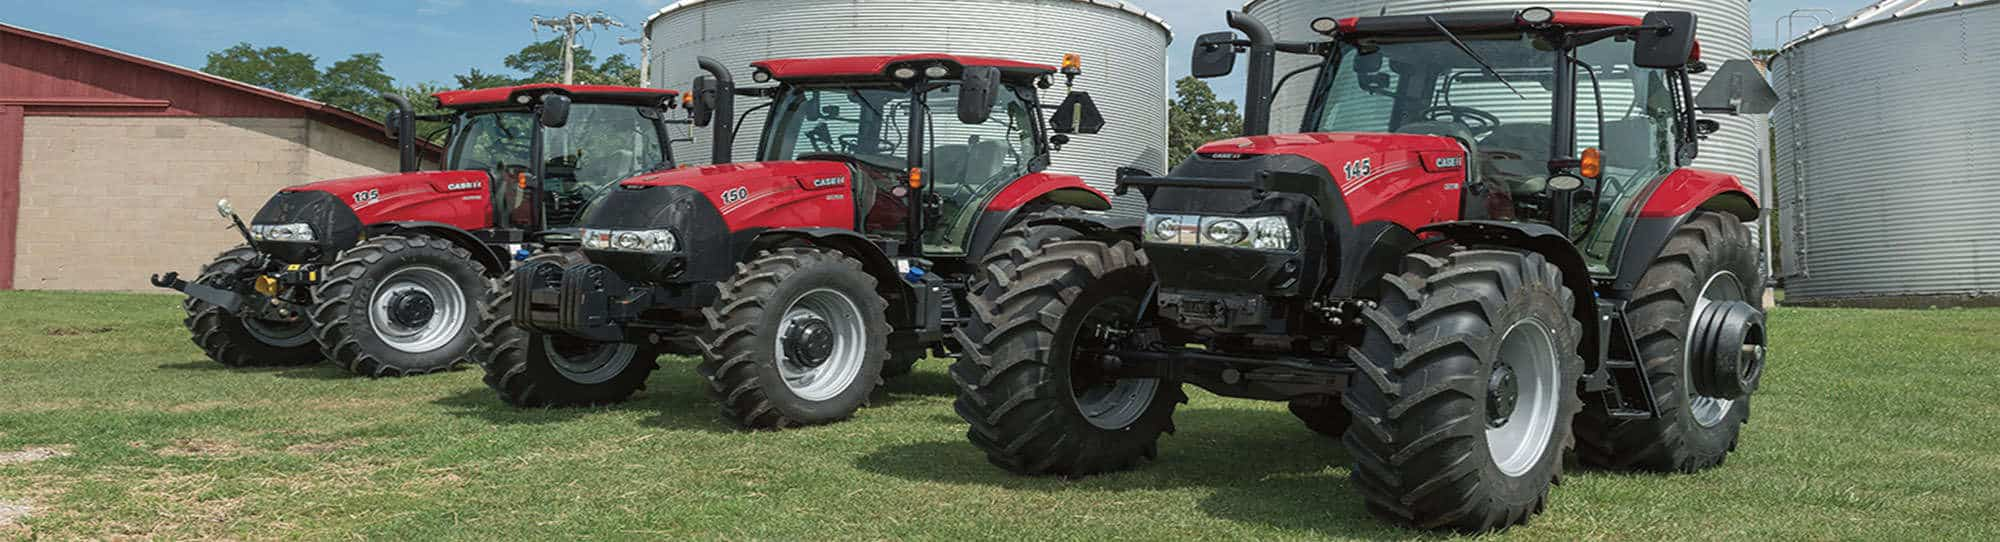 Maxxum tractors by Case